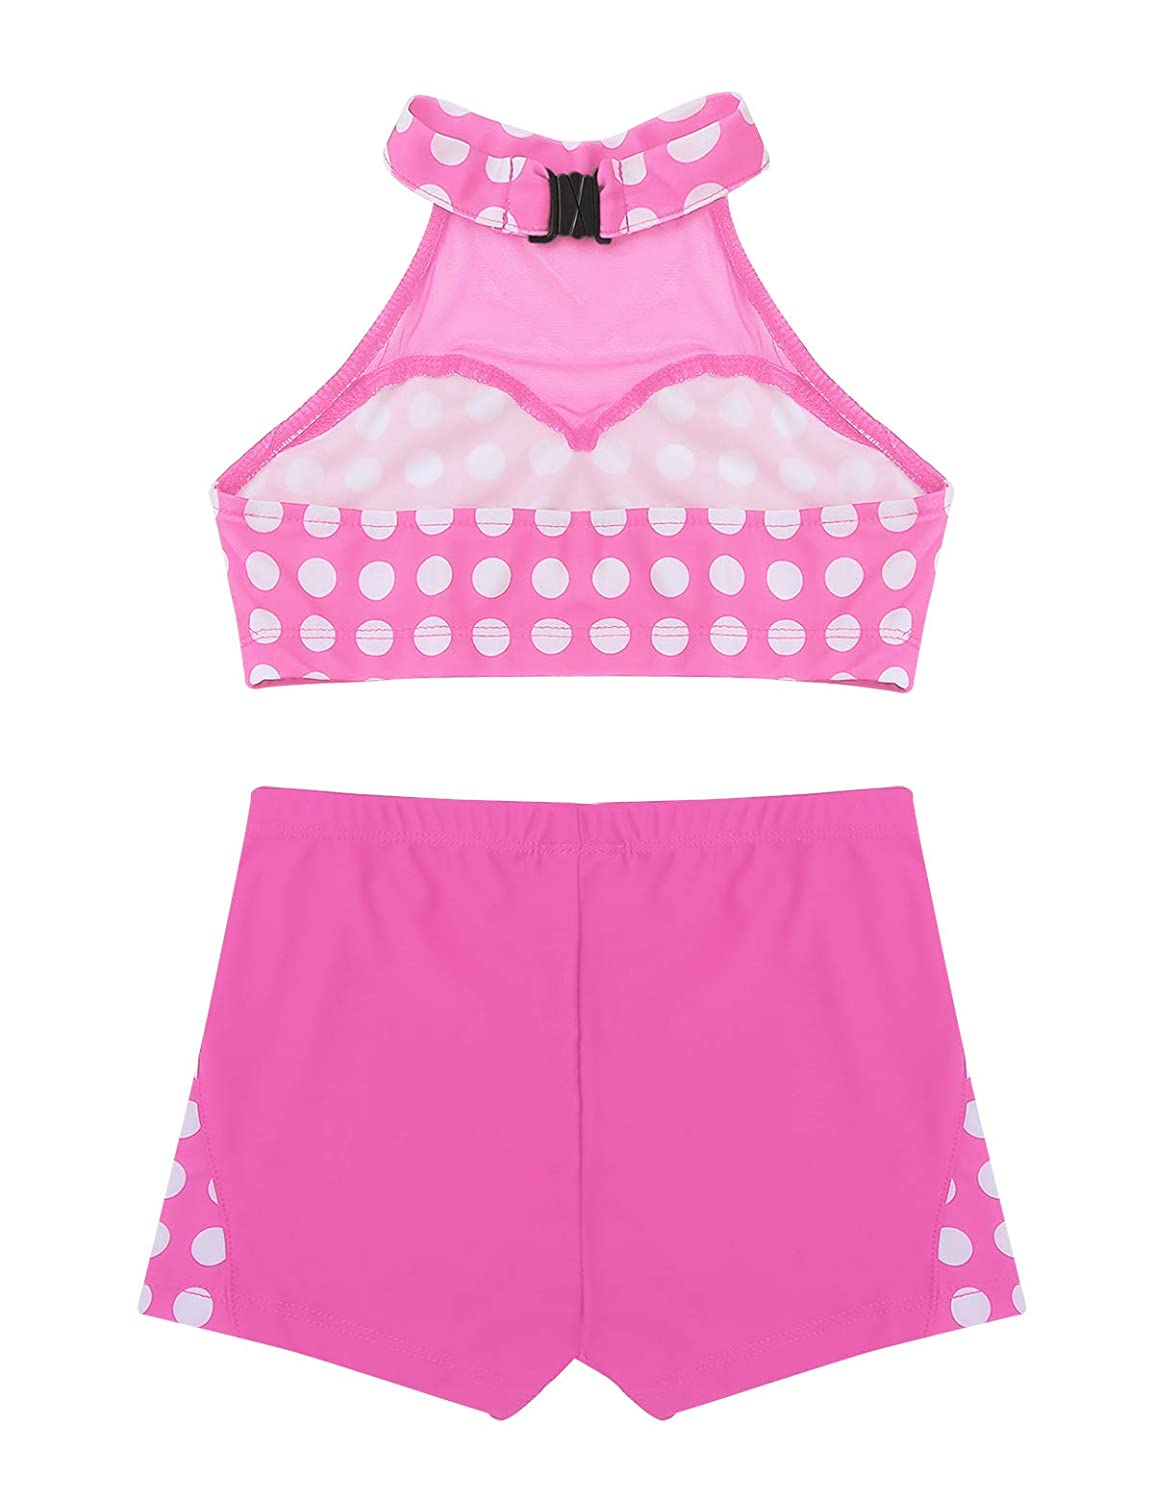 moily Kids Girls Athletic 2-Pieces Outfit Halter Polka Dot Crop Top with Booty Shorts Ballet//Dance//Sports